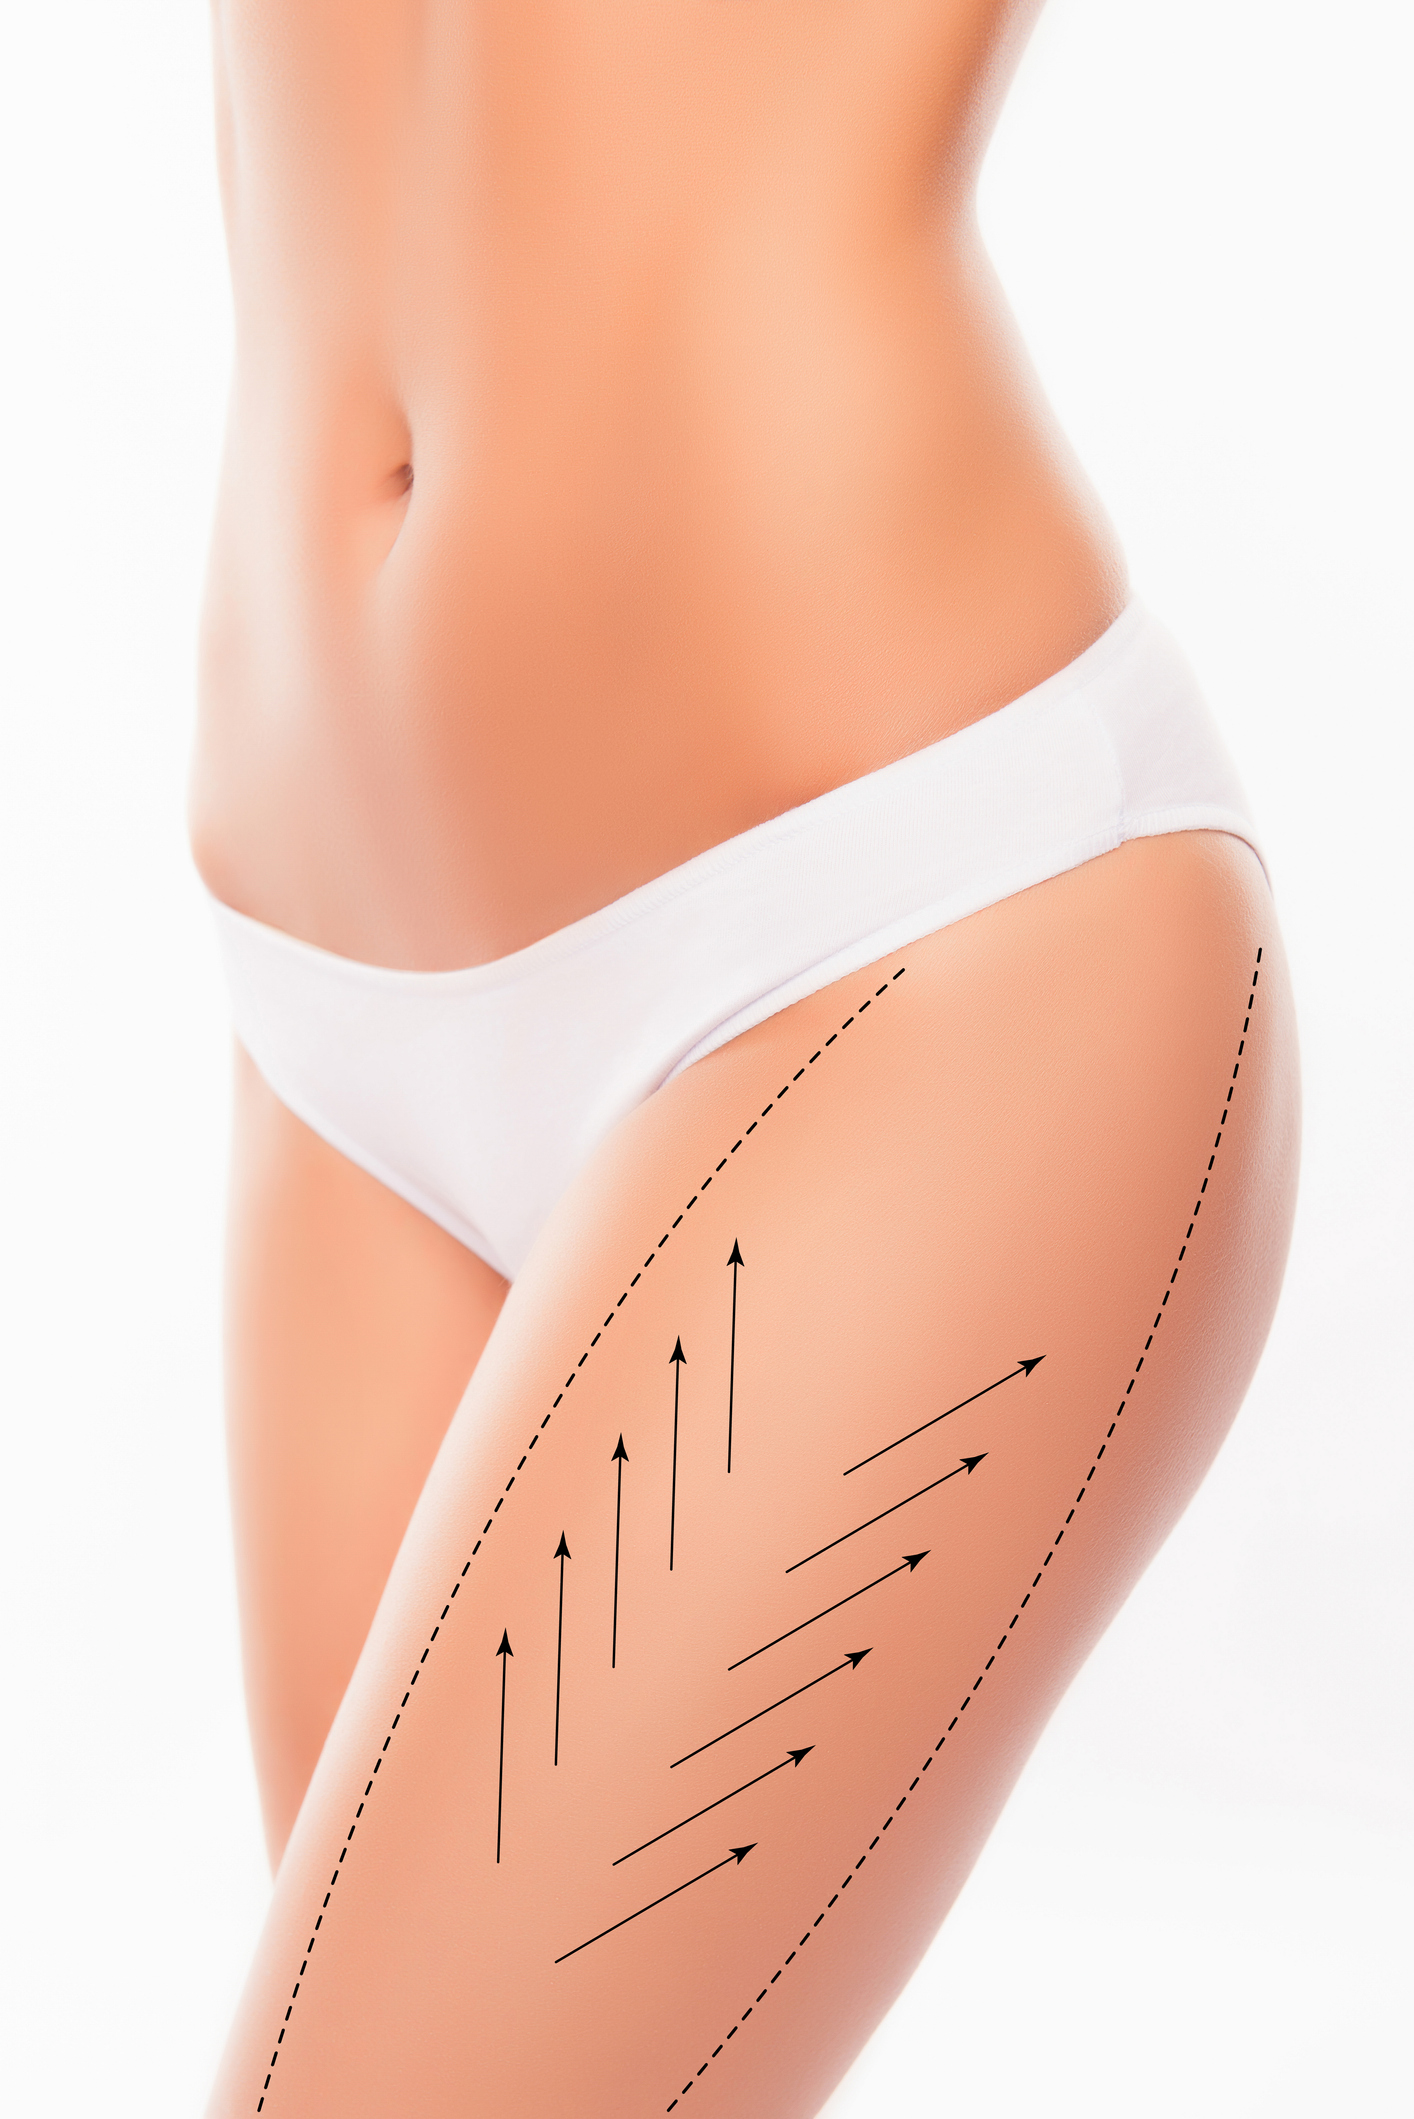 Lymphatic Drainage post cosmetic surgery